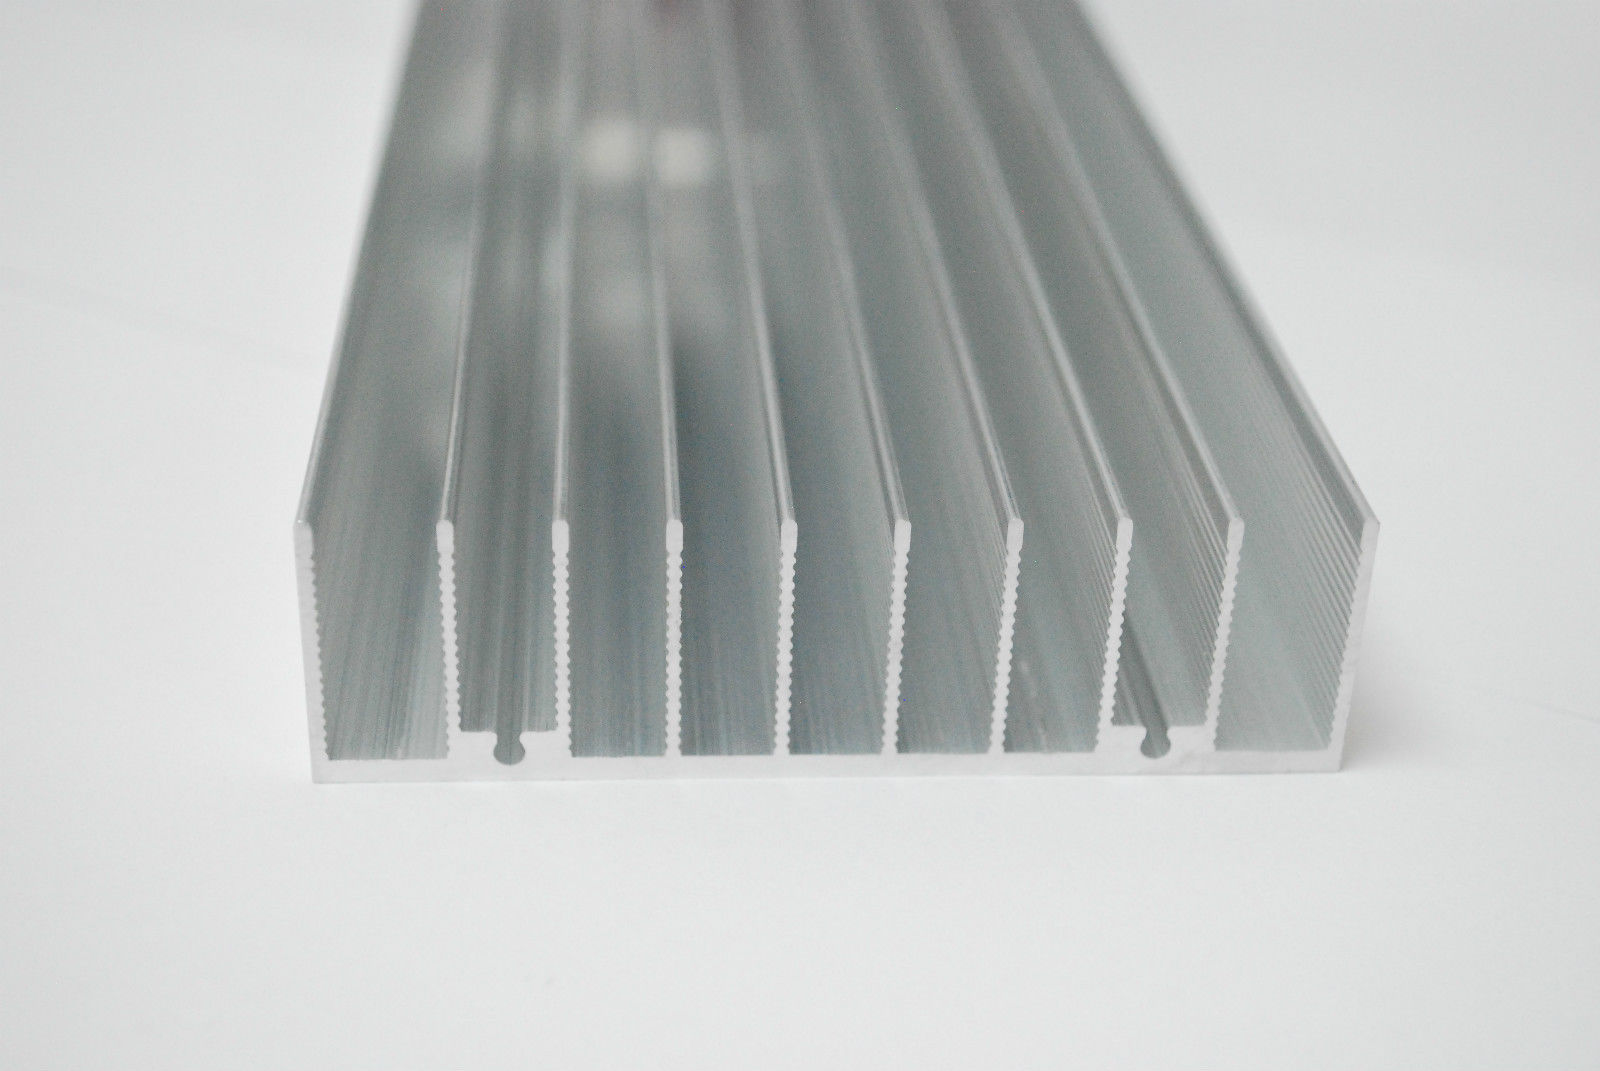 600*76*22mm Aluminum Heatsink for  20x3W or 60x1W LED